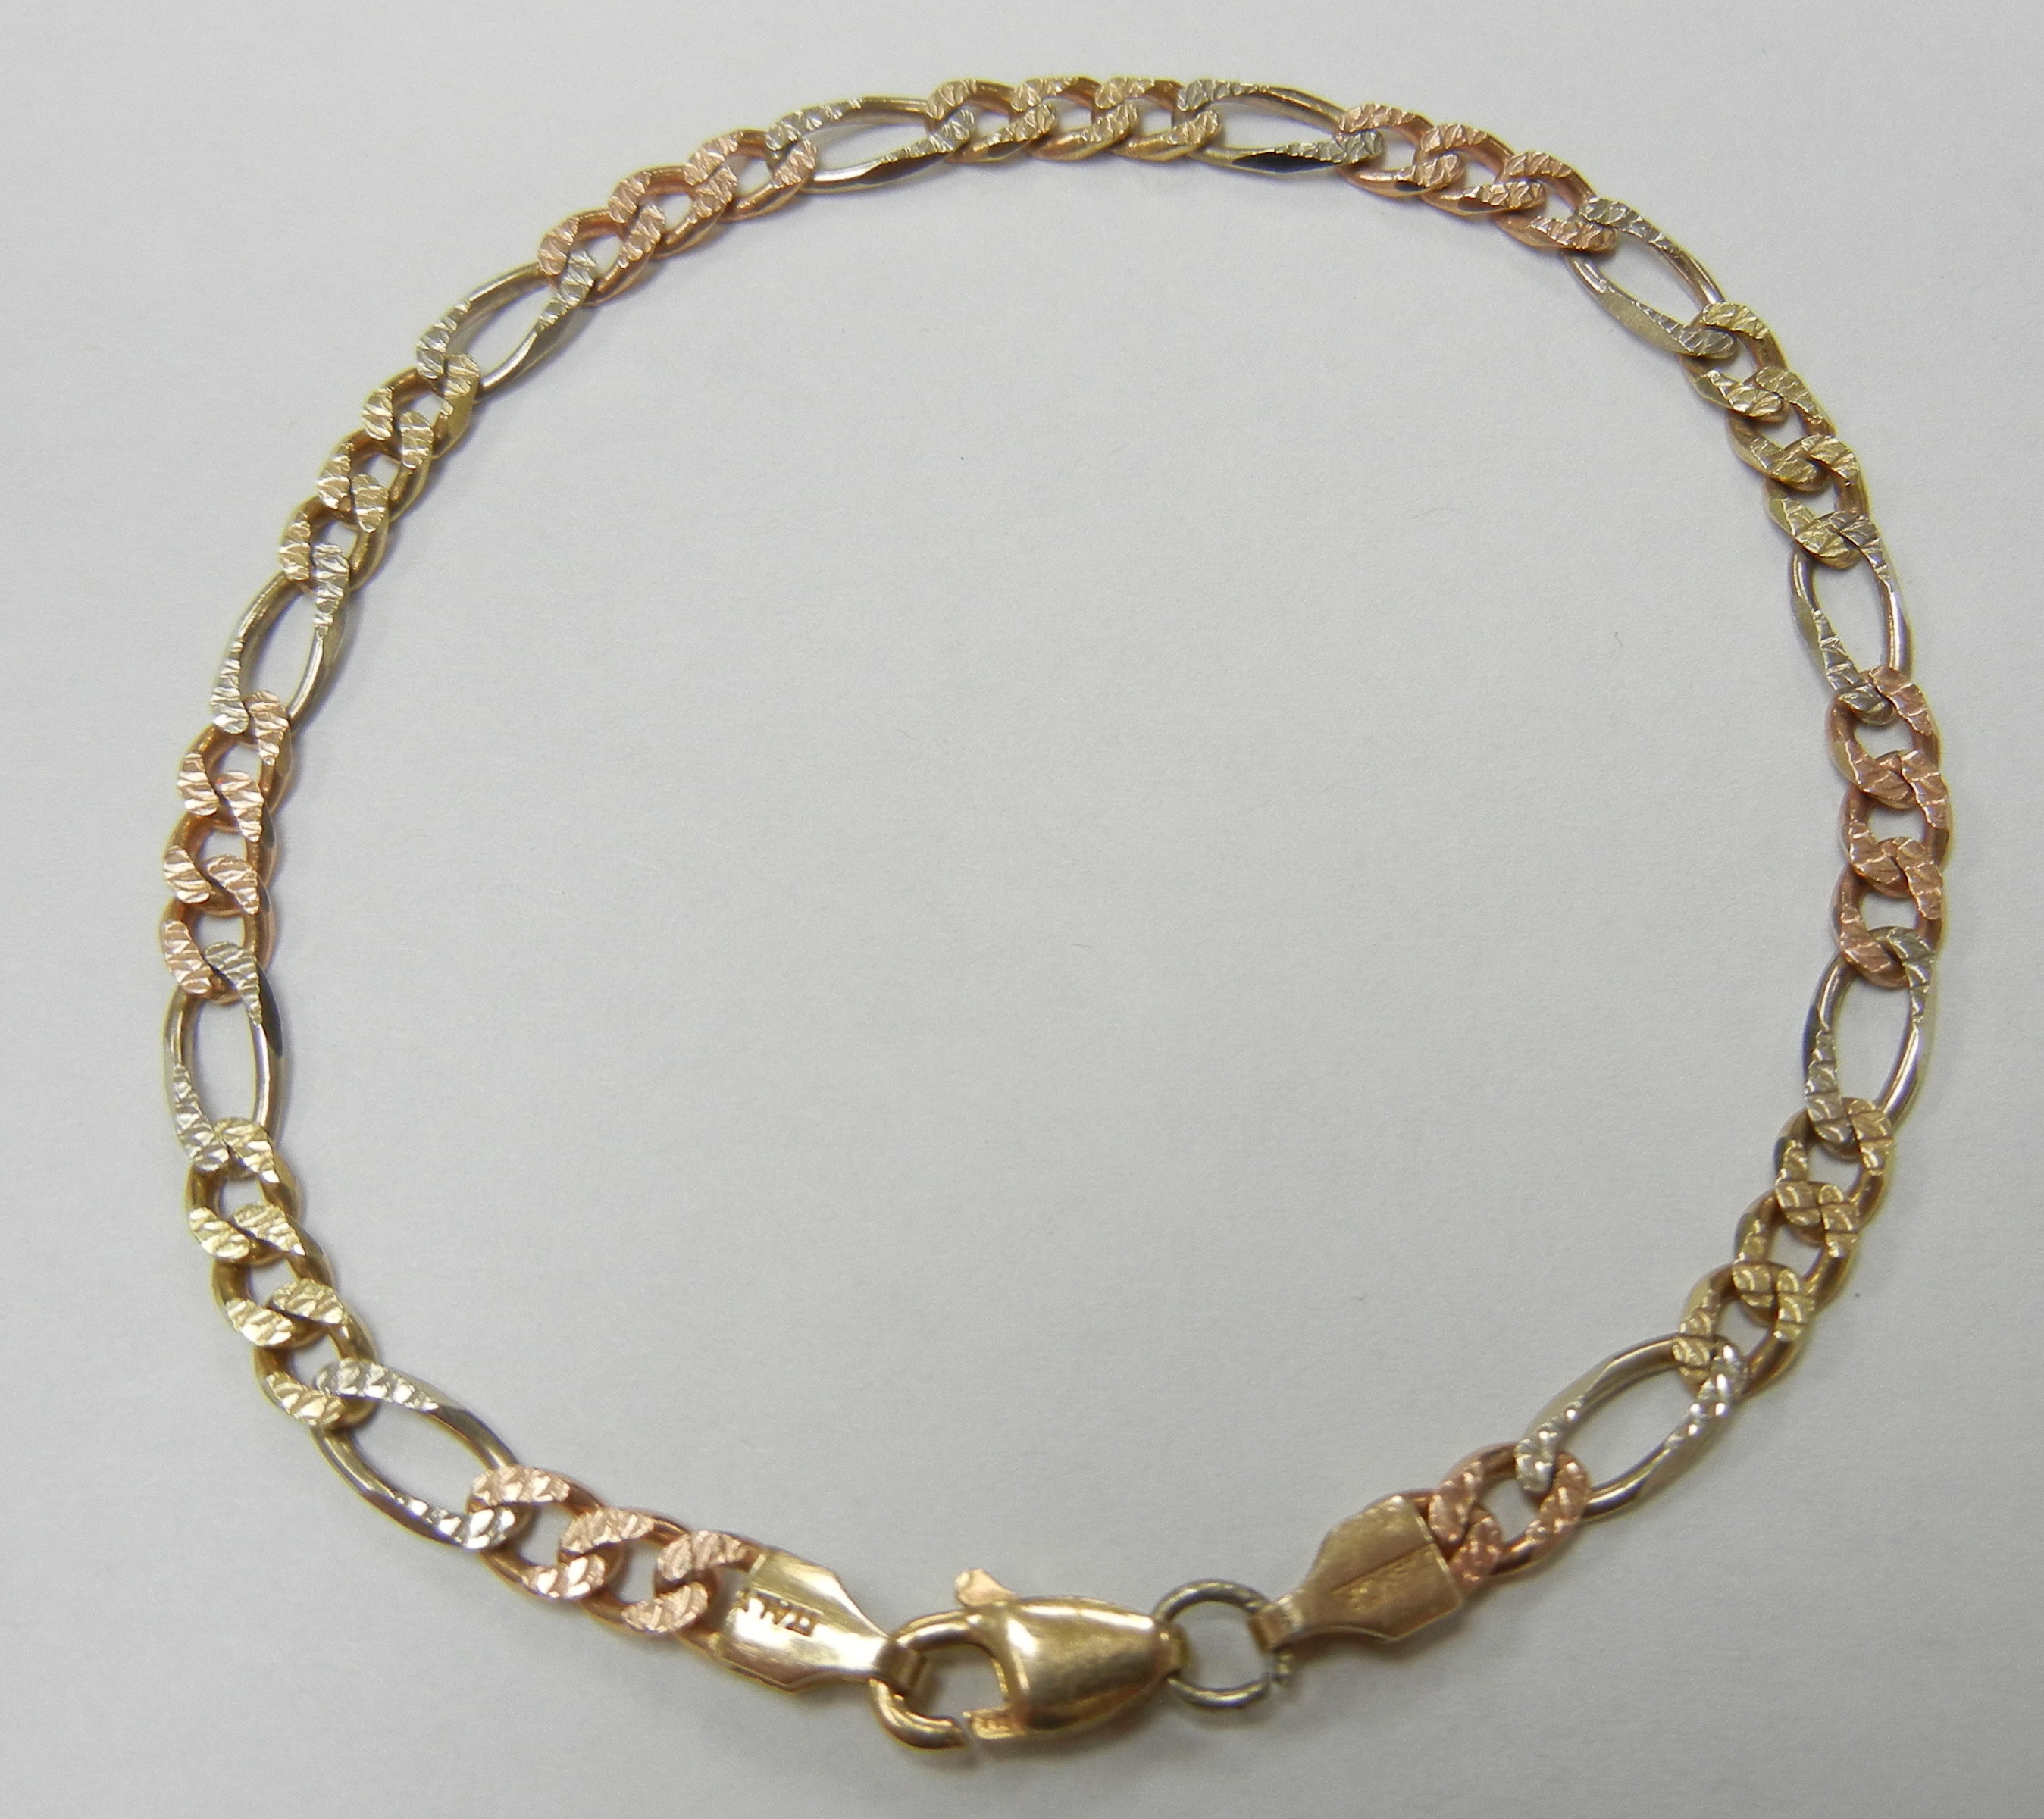 14KT MULTI COLORED GOLD FIGARO STYLE 7